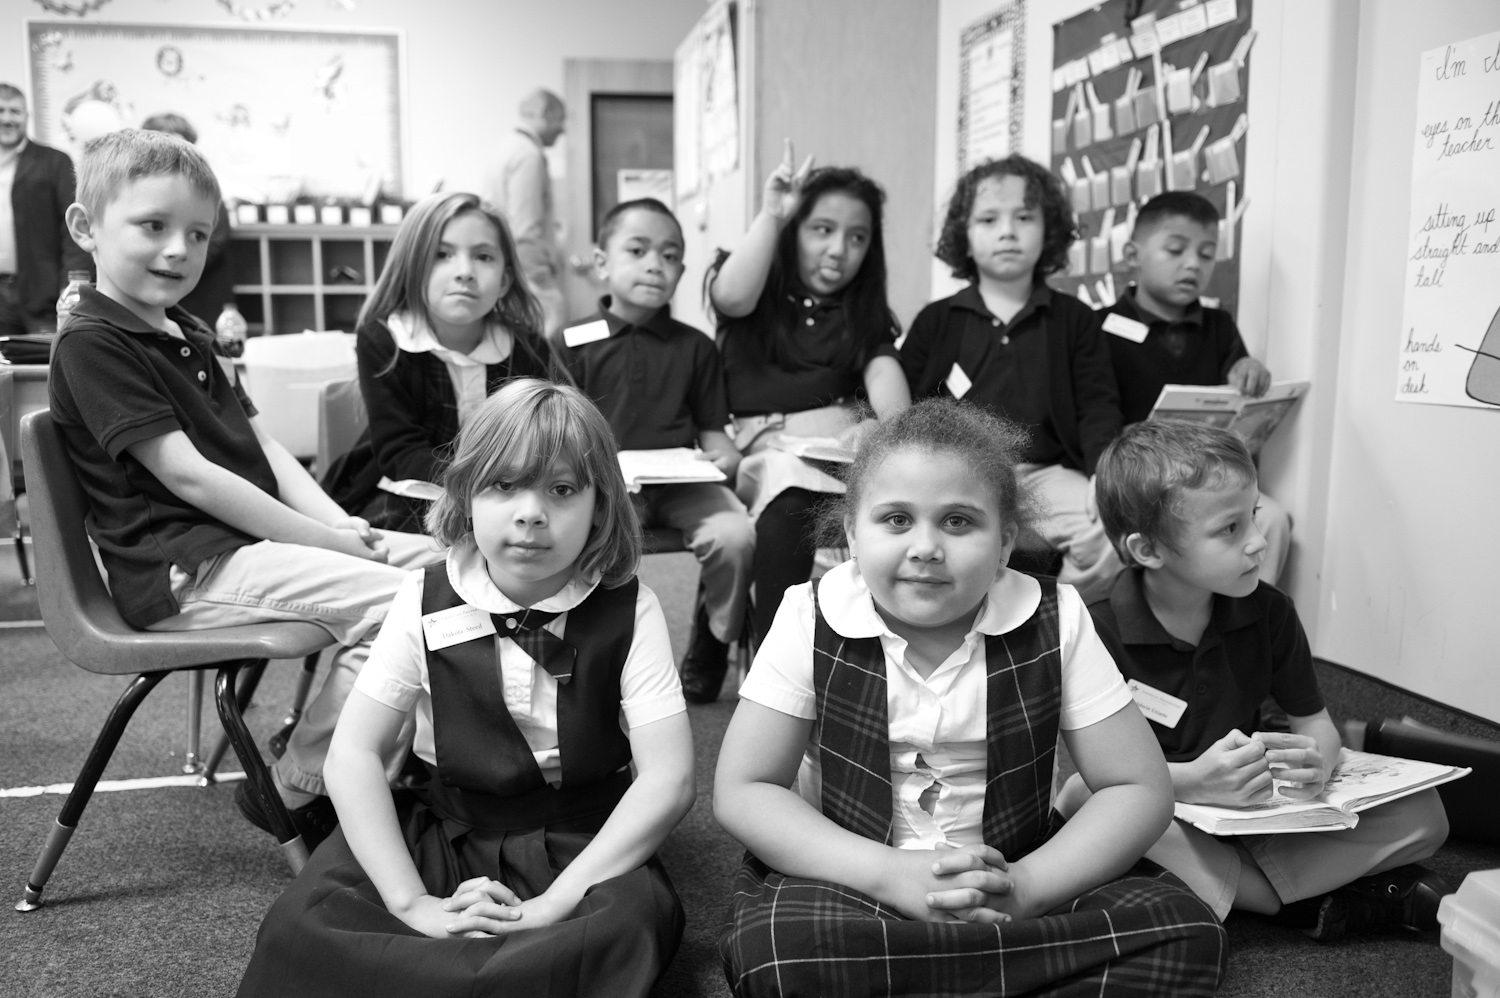 The American Preparatory Academy is a school for grades K-9.  A Kindergarten class is pictured above.